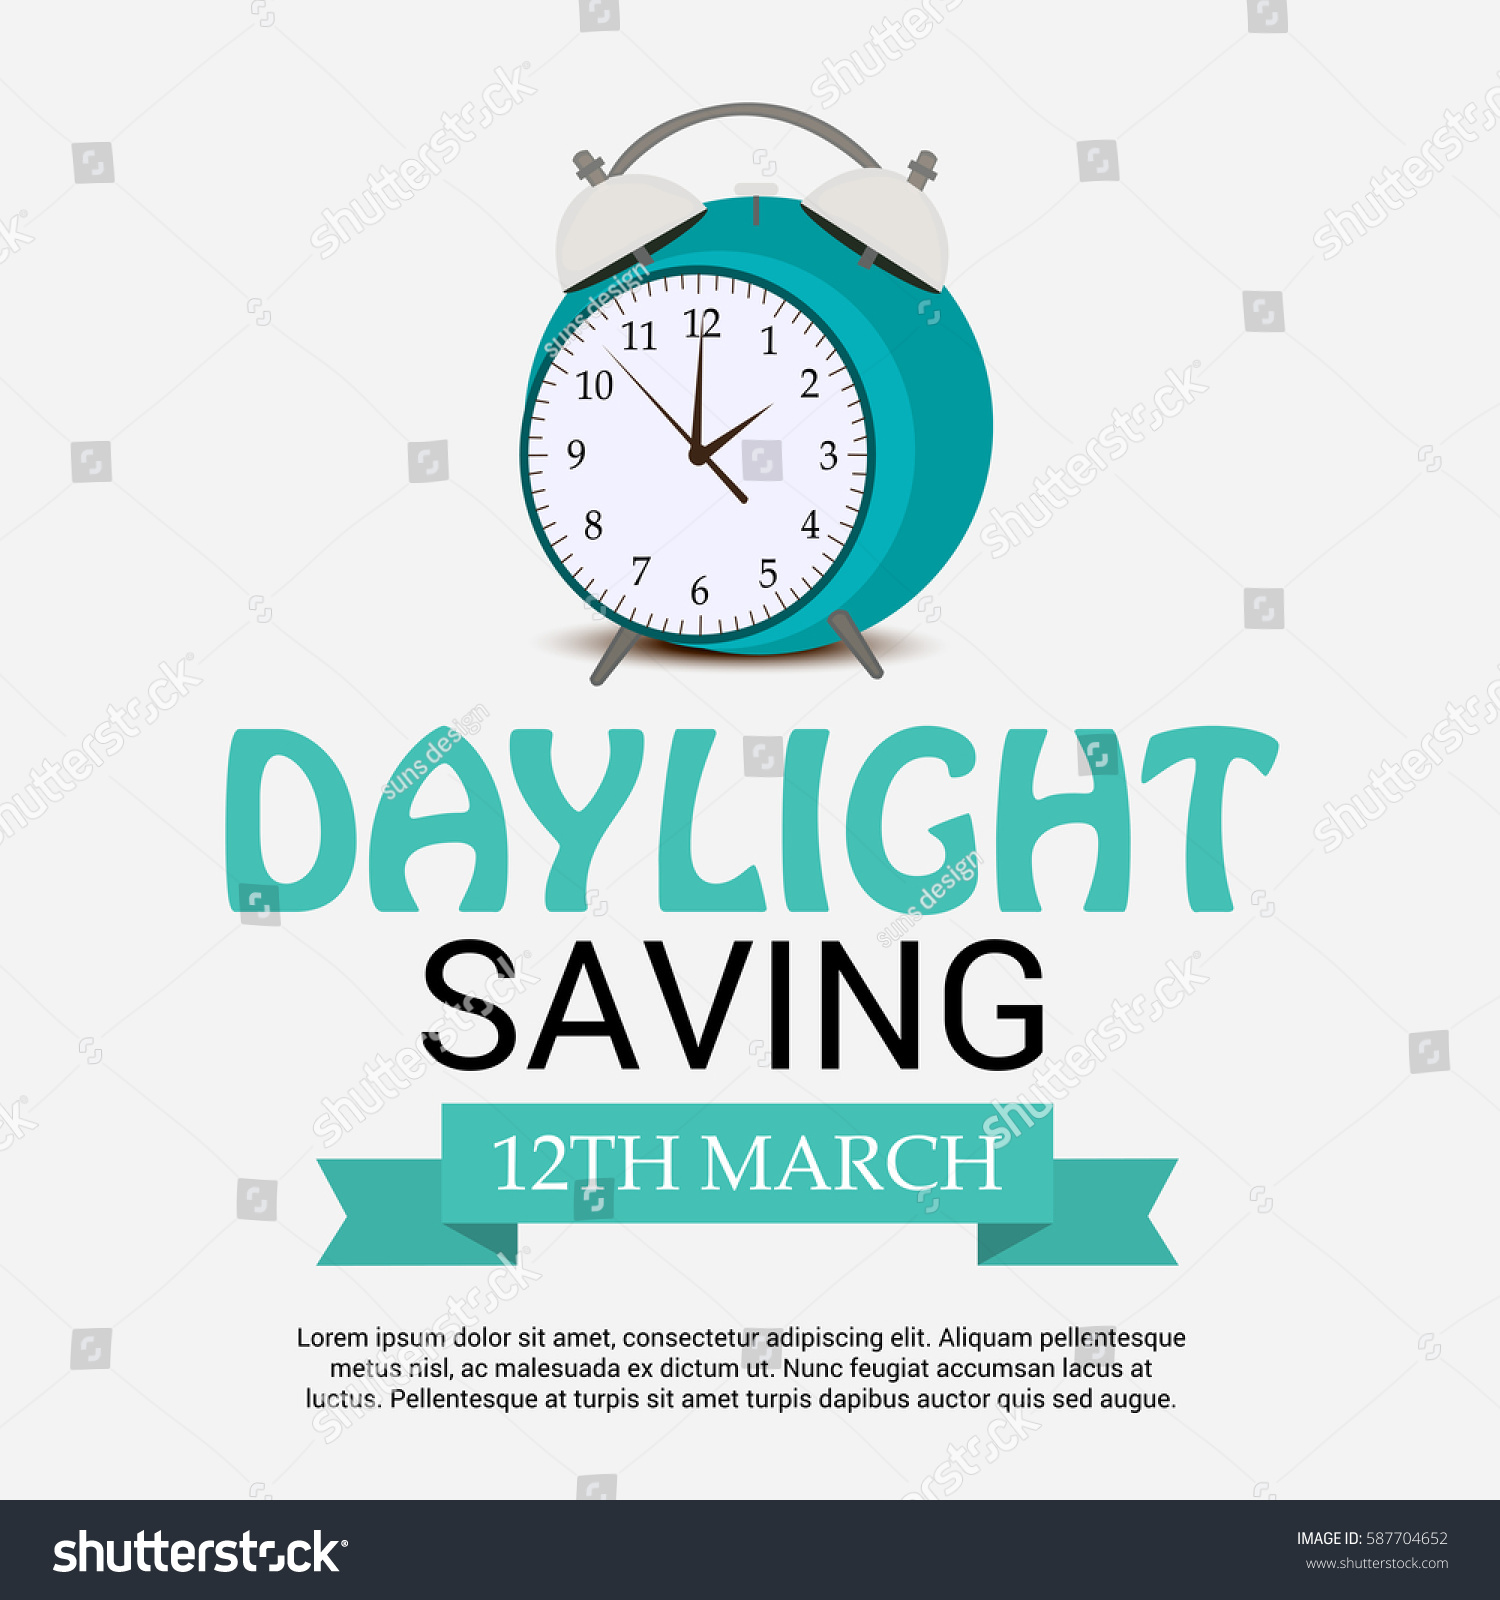 daylight saving time Daylight savings time, or dst, begins on the second sunday of march and ends on the first sunday of november in march, clocks are moved forward one hour from 2am standard time to 3am dst, and in november, clocks are moved back one hour from 2am dst to 1am standard time.